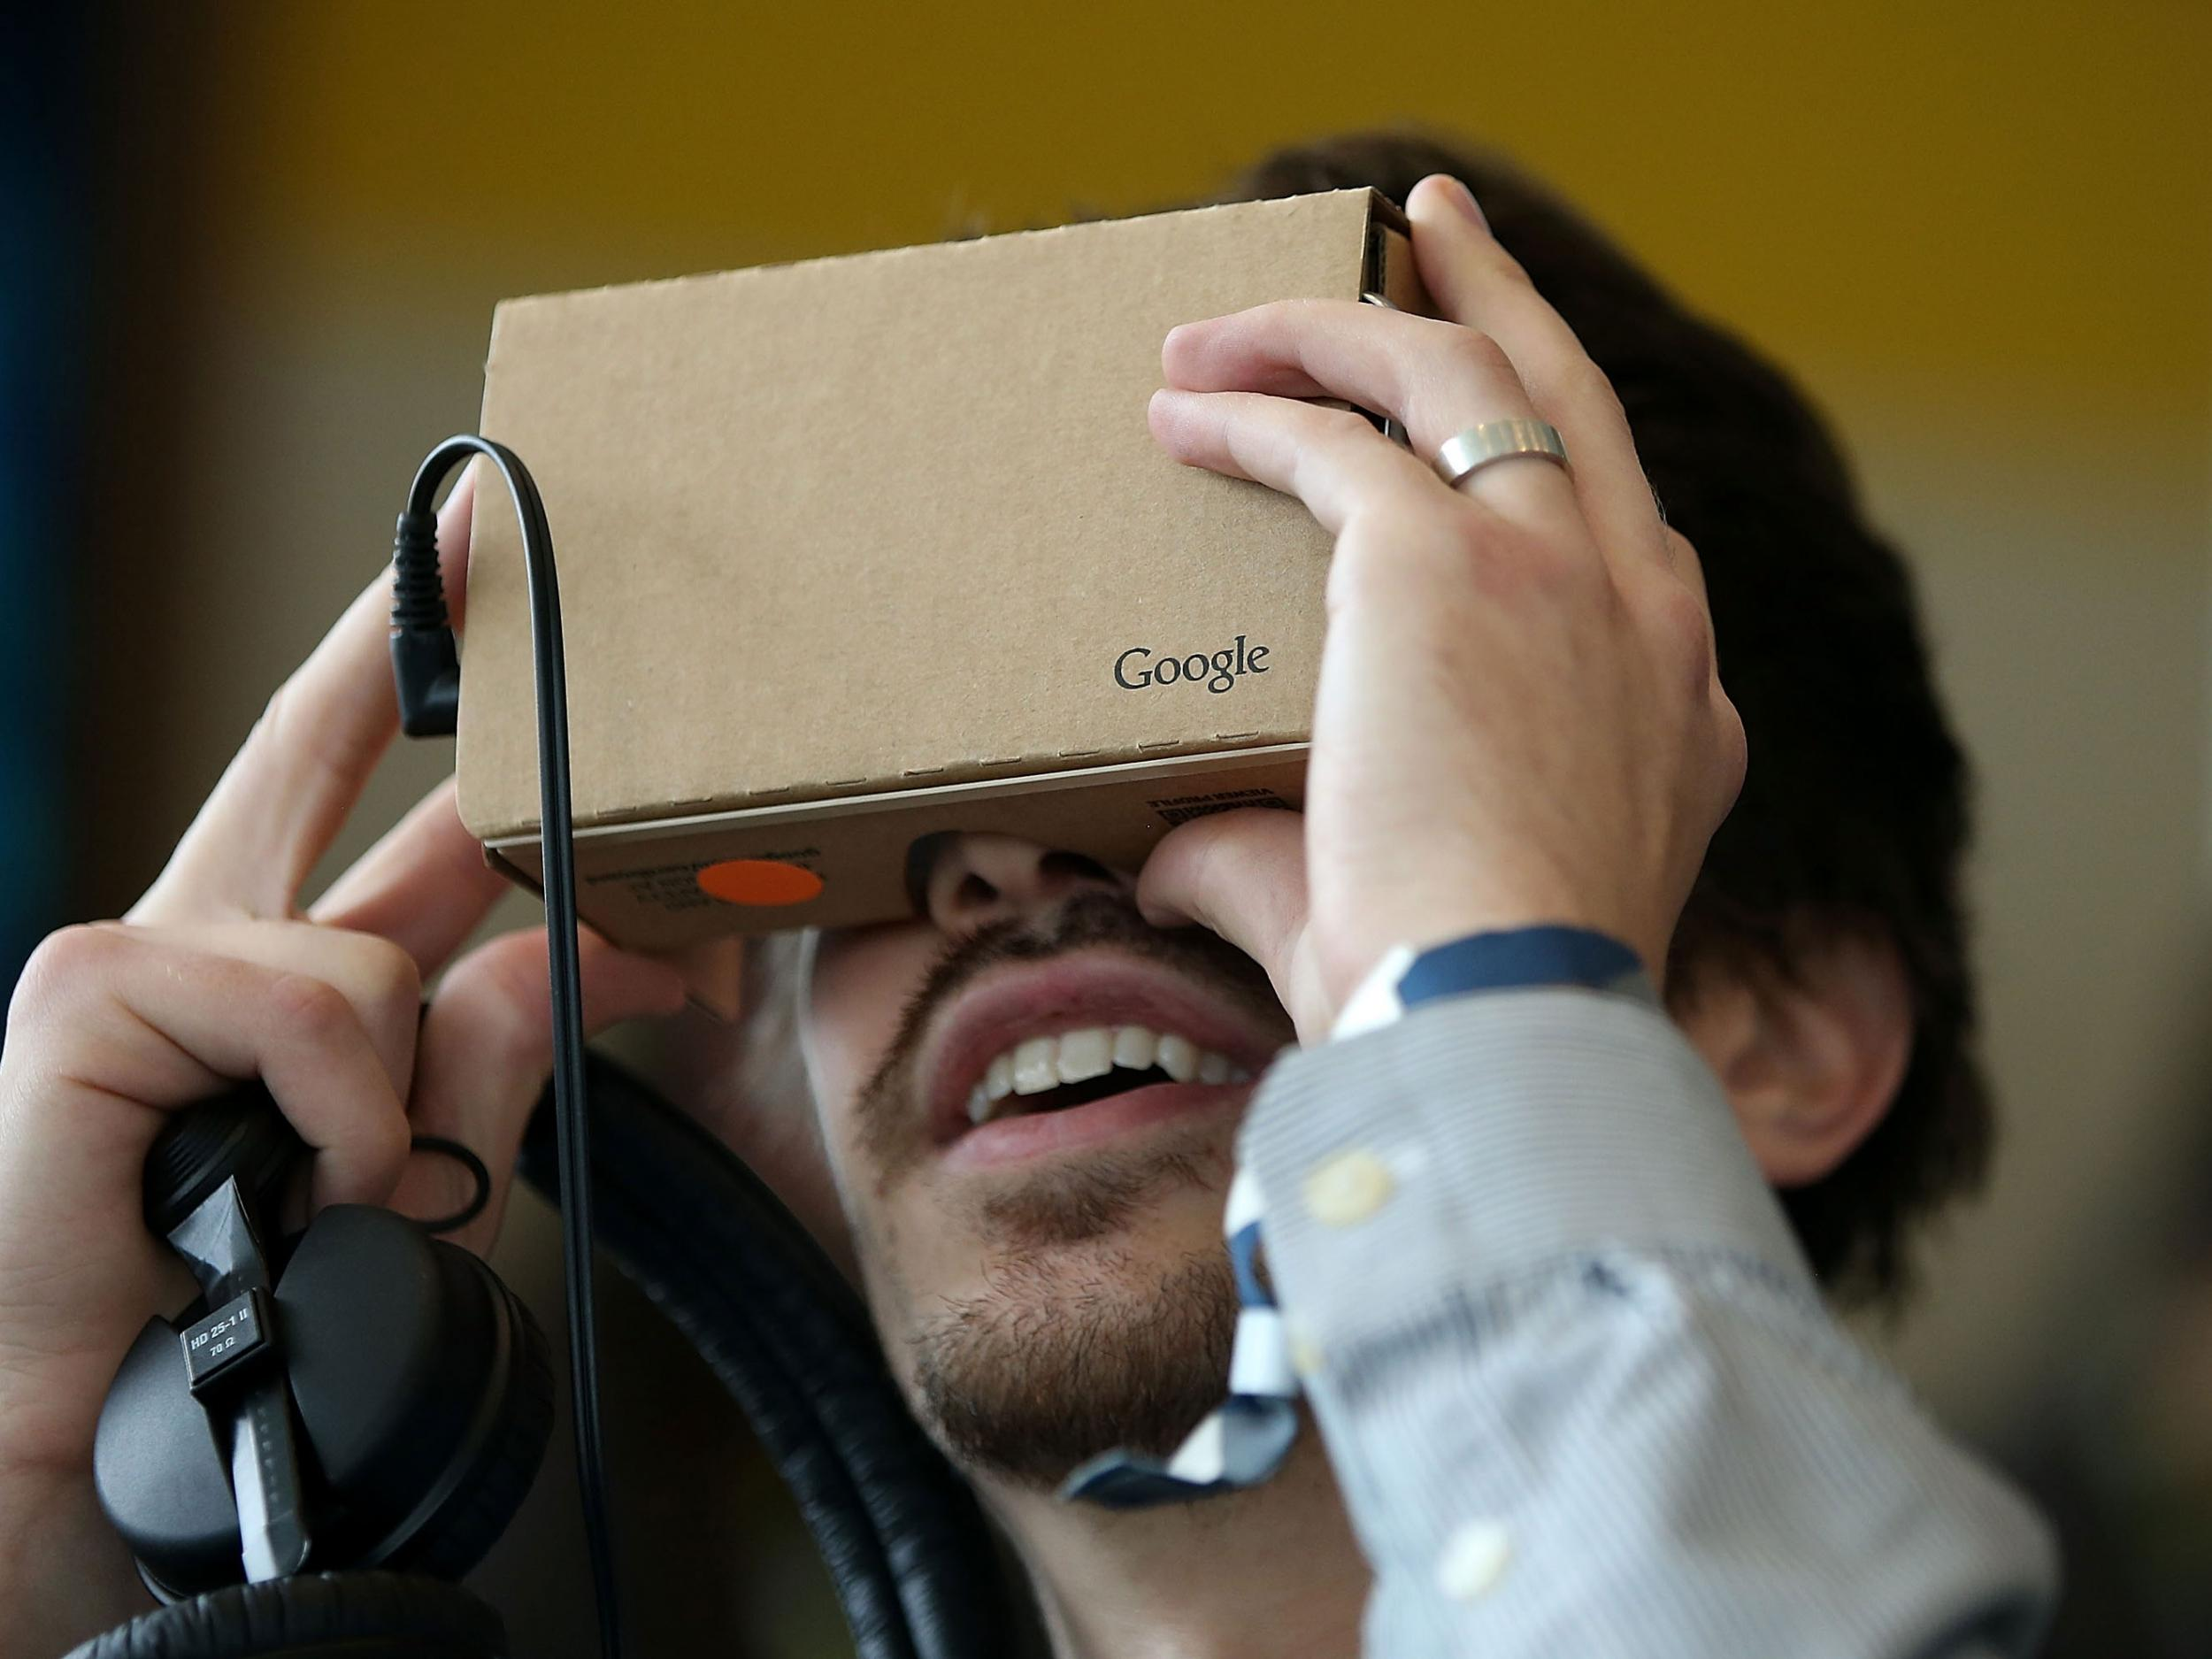 YouTube for iPhone now compatible with Google Cardboard virtual reality headset, company announces